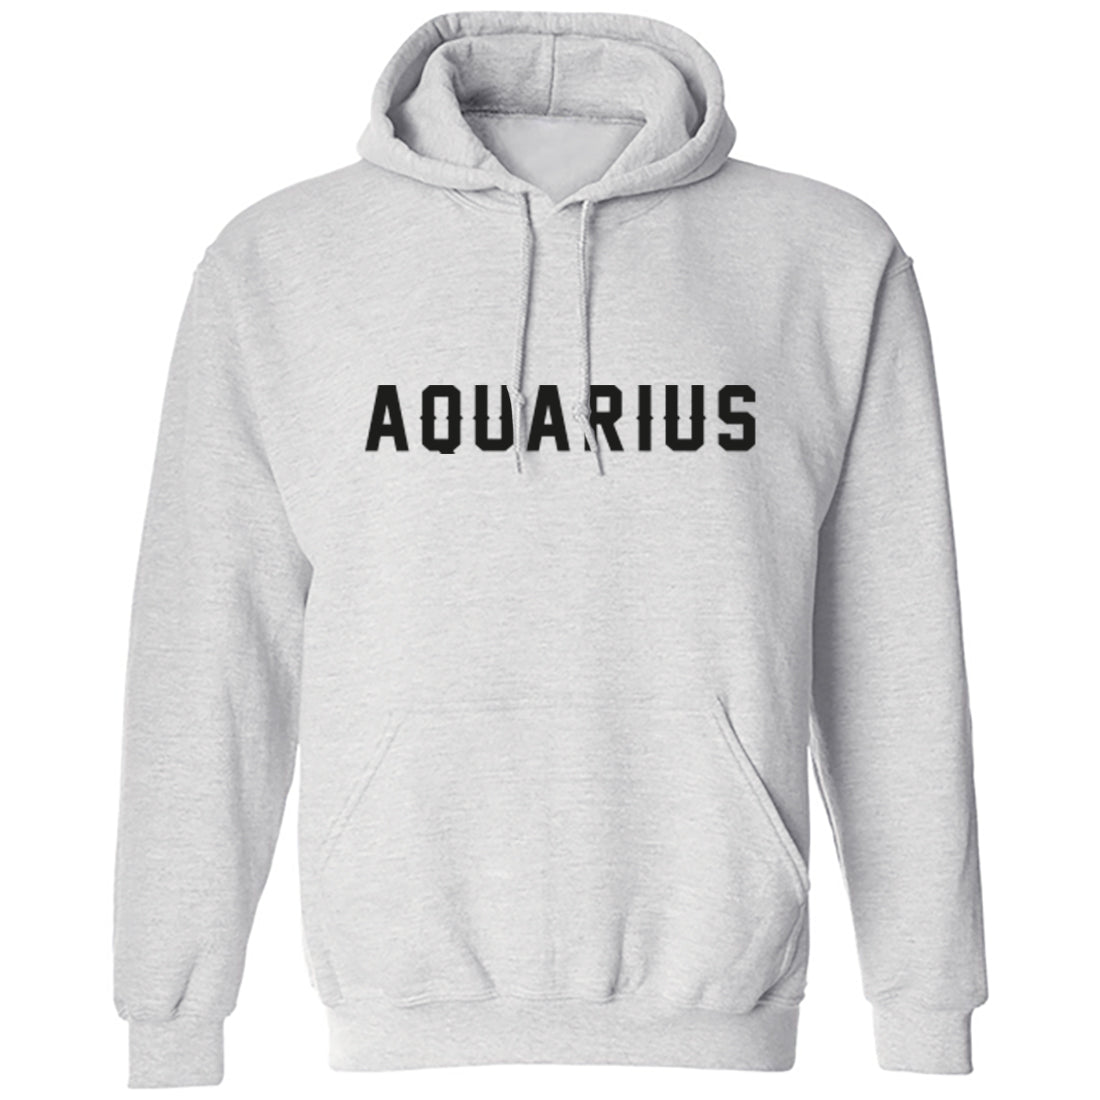 Aquarius Type Zodiac Sign Unisex Hoodie K2109 - Illustrated Identity Ltd.